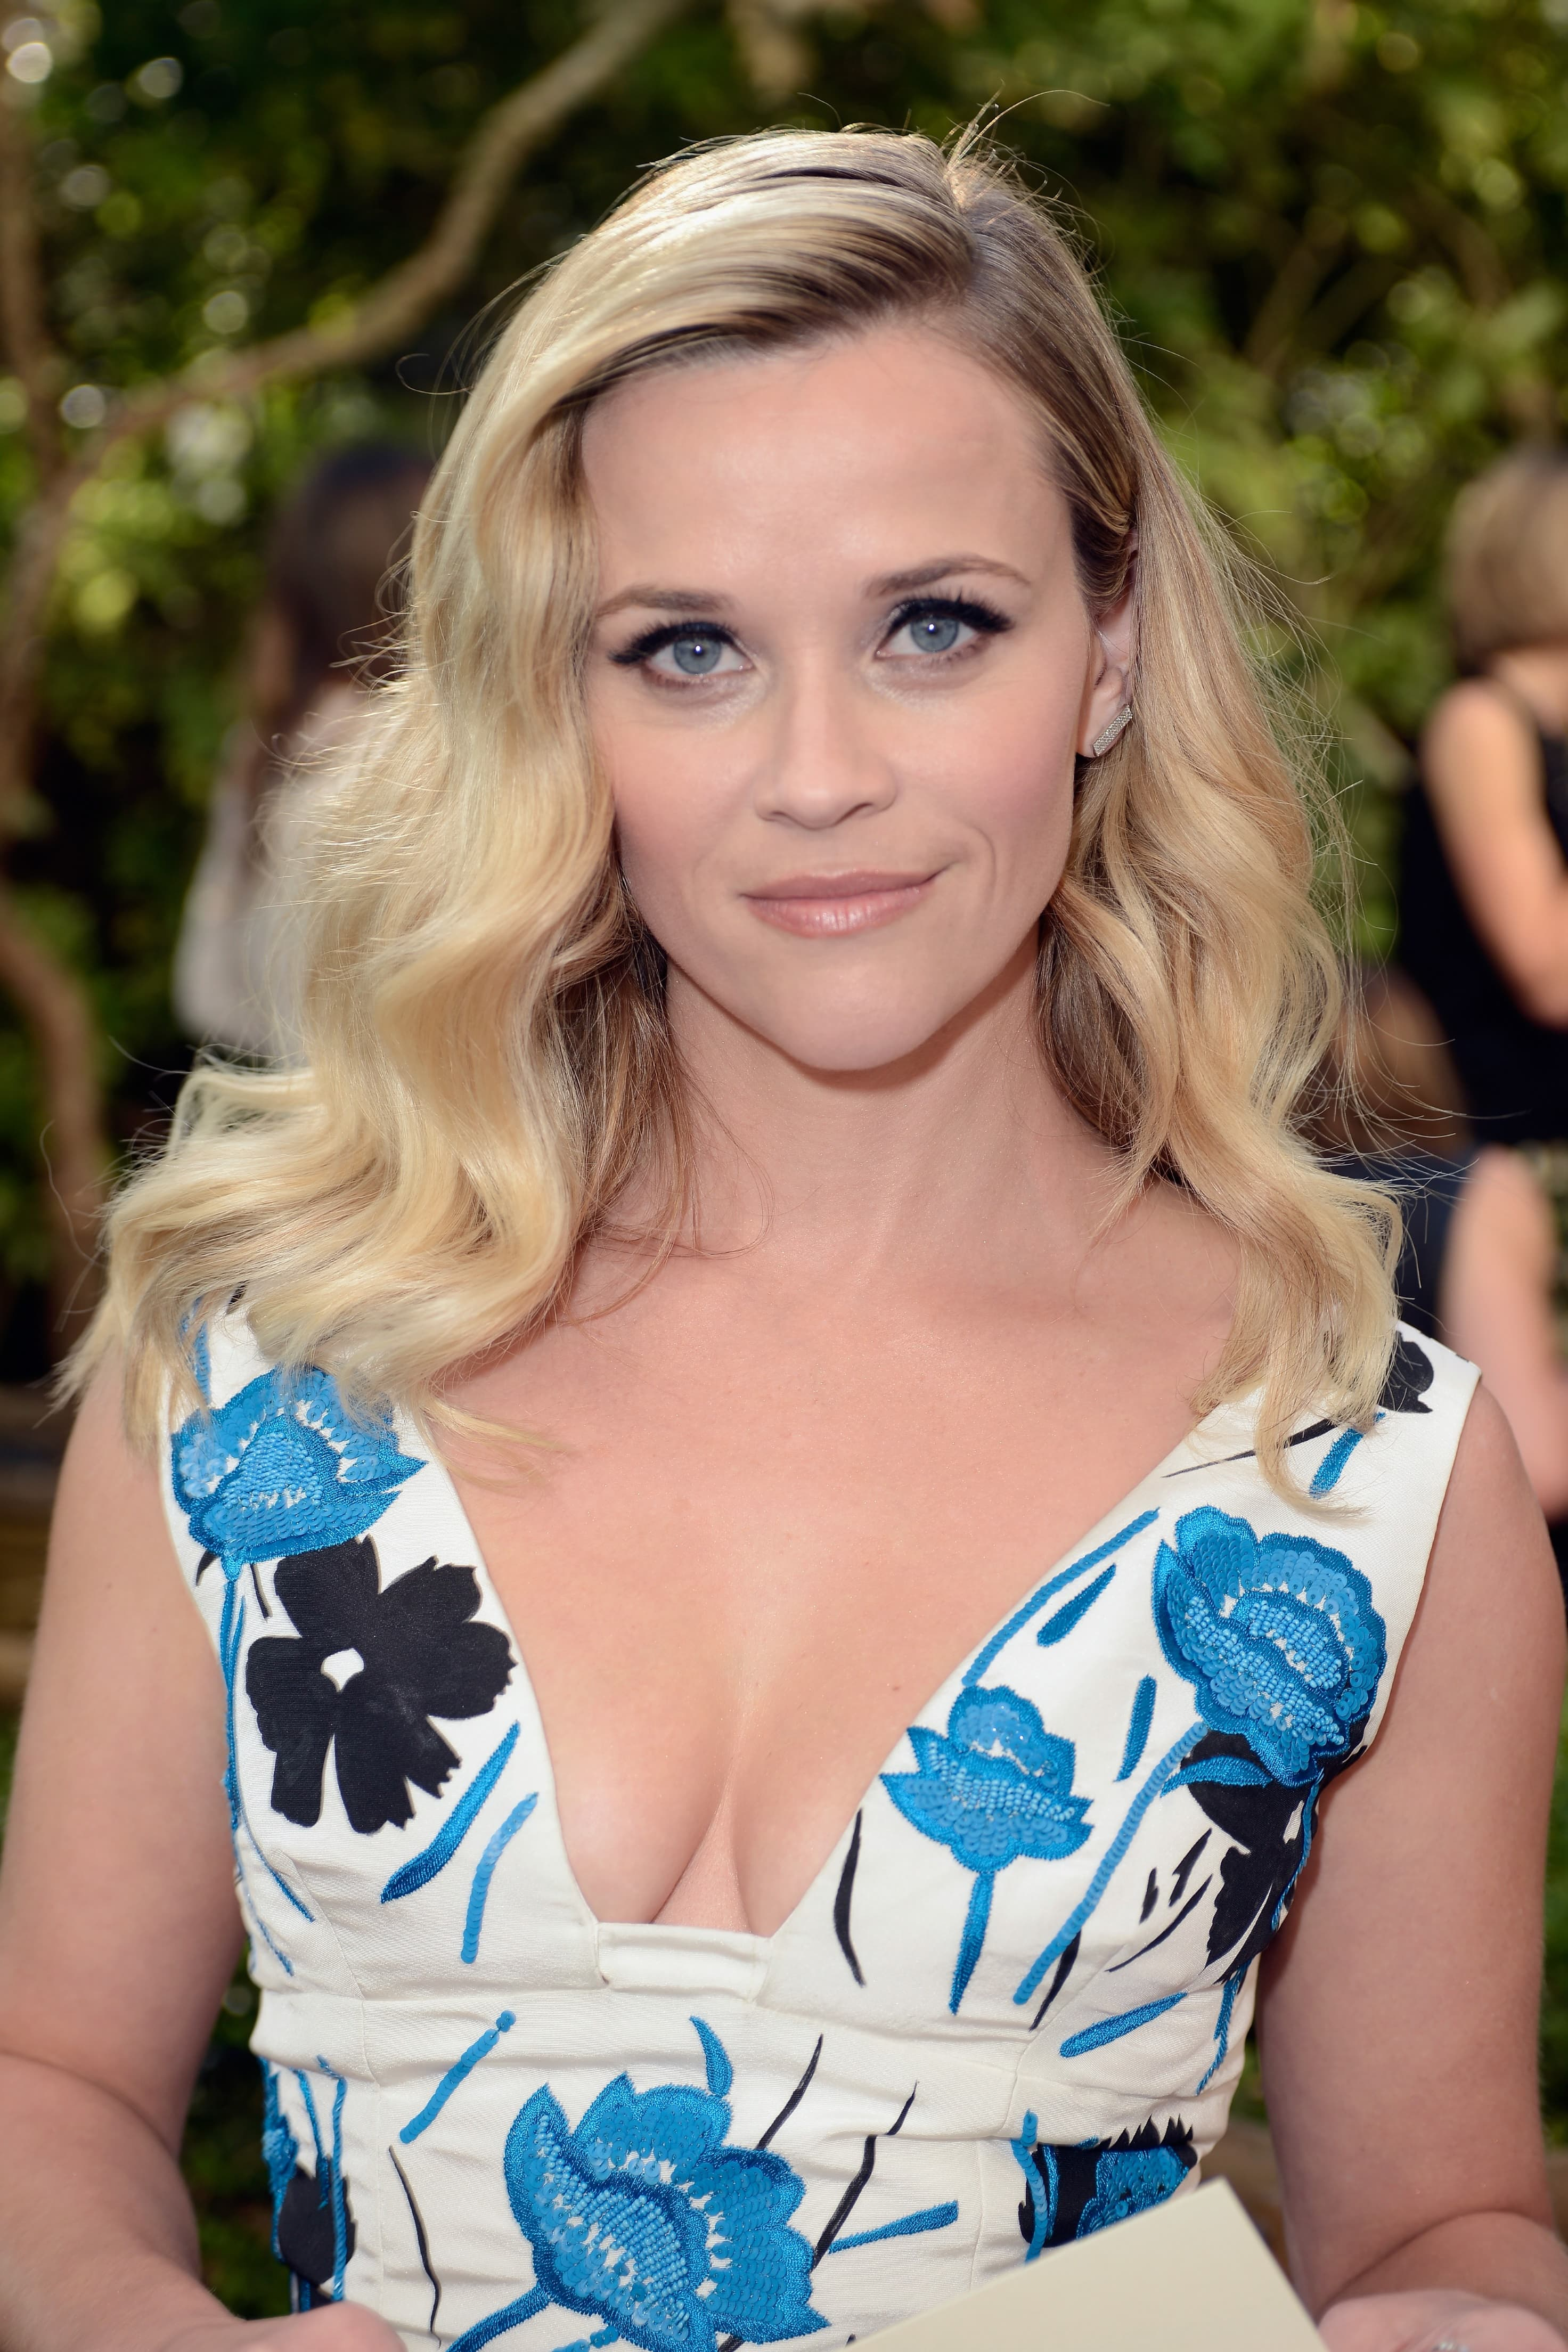 2944x4416 - Reese Witherspoon Wallpapers 34